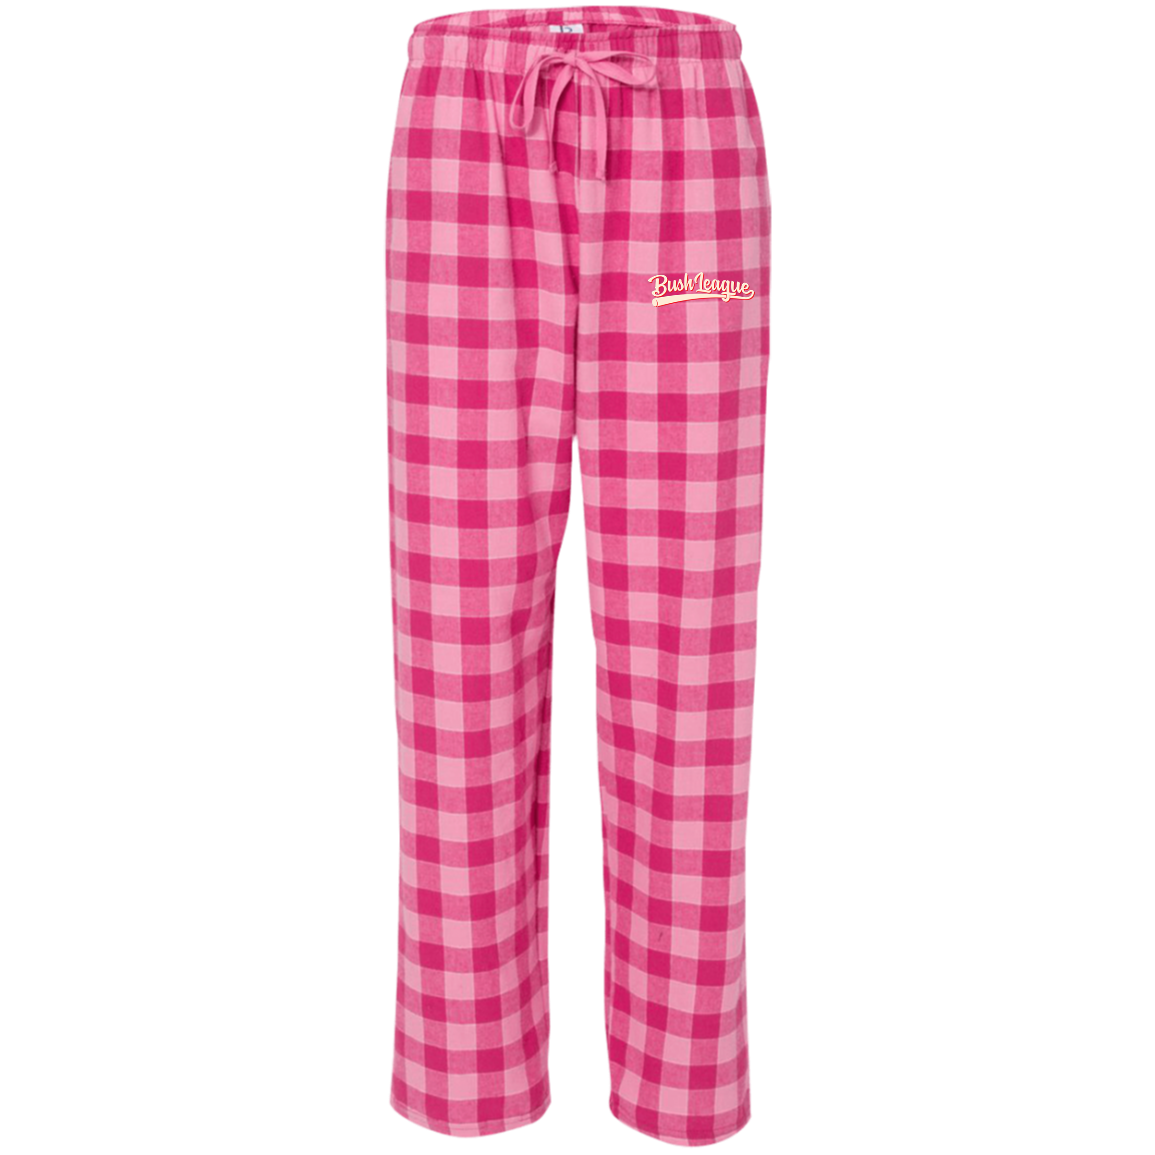 Bush League Flannel Pants